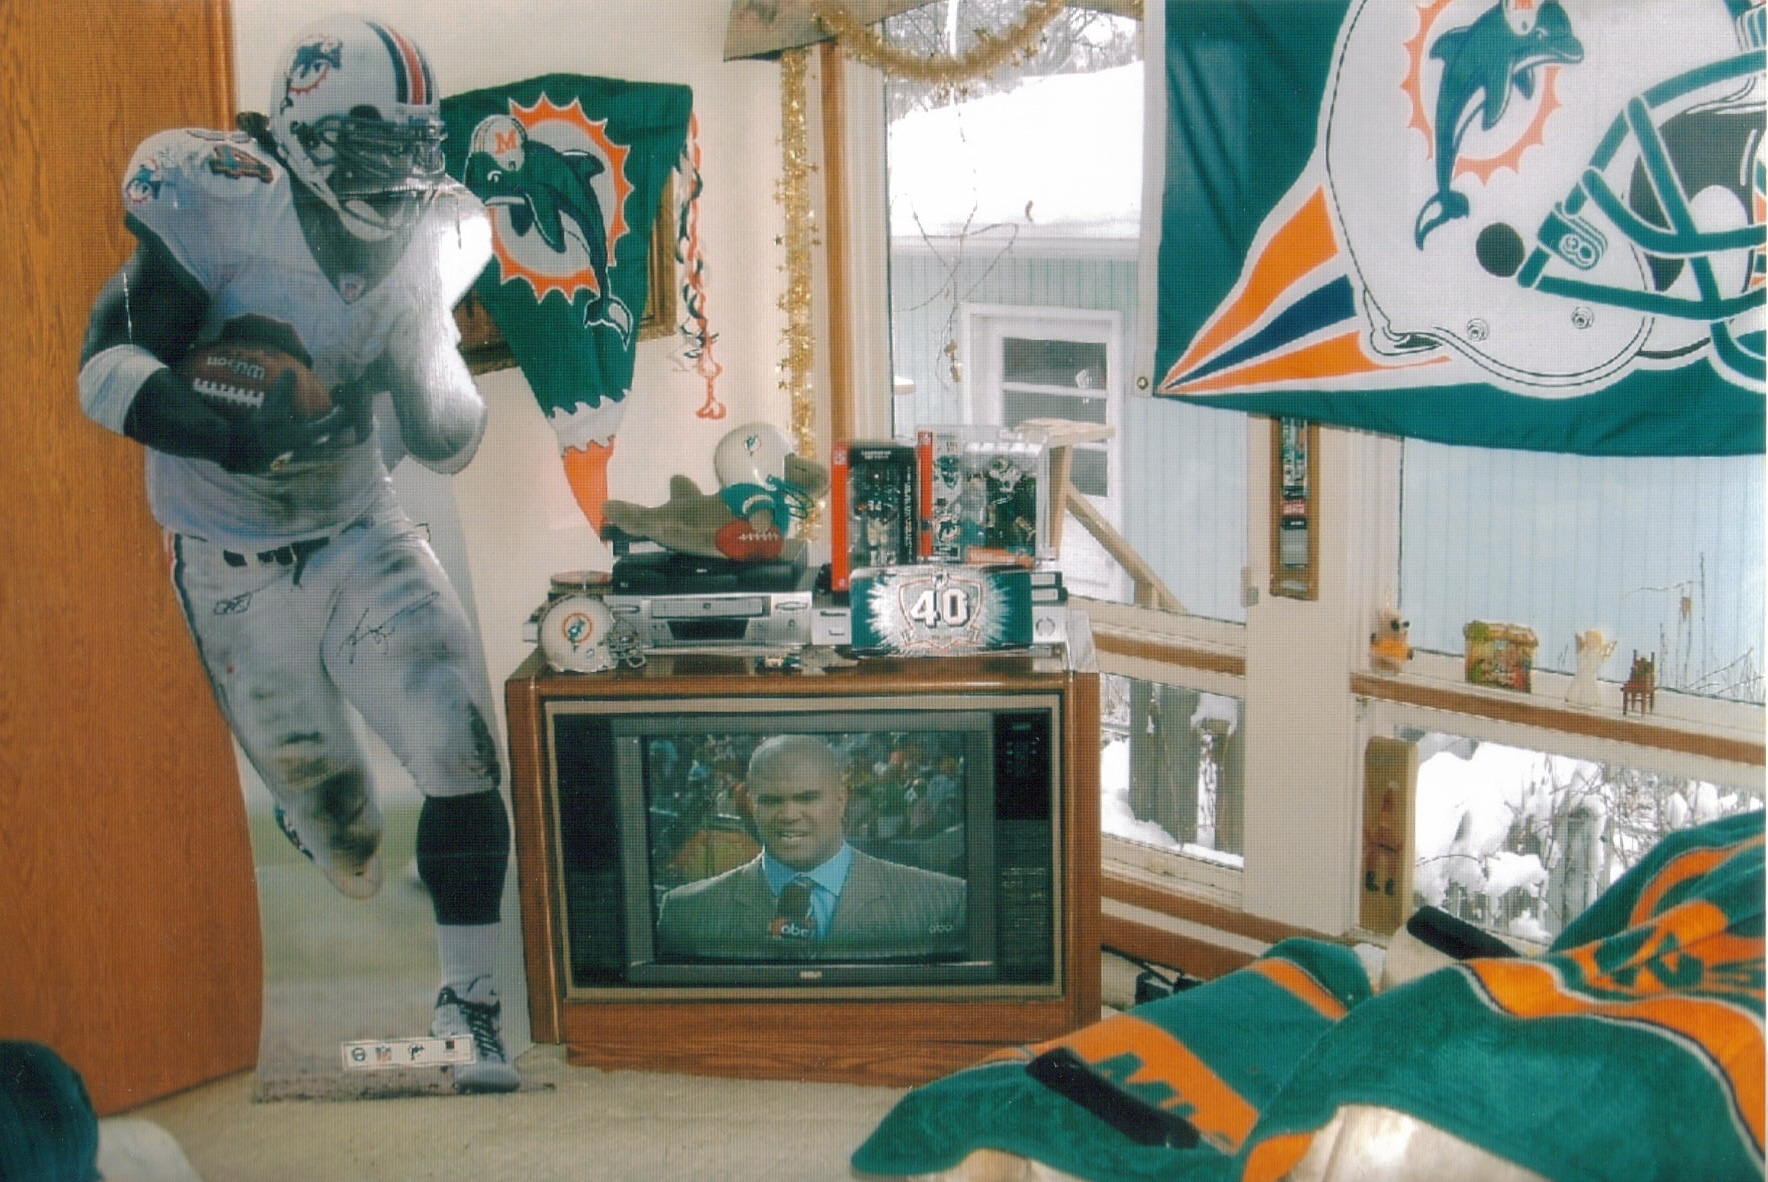 December of 2005: living room set to watch Dolphins